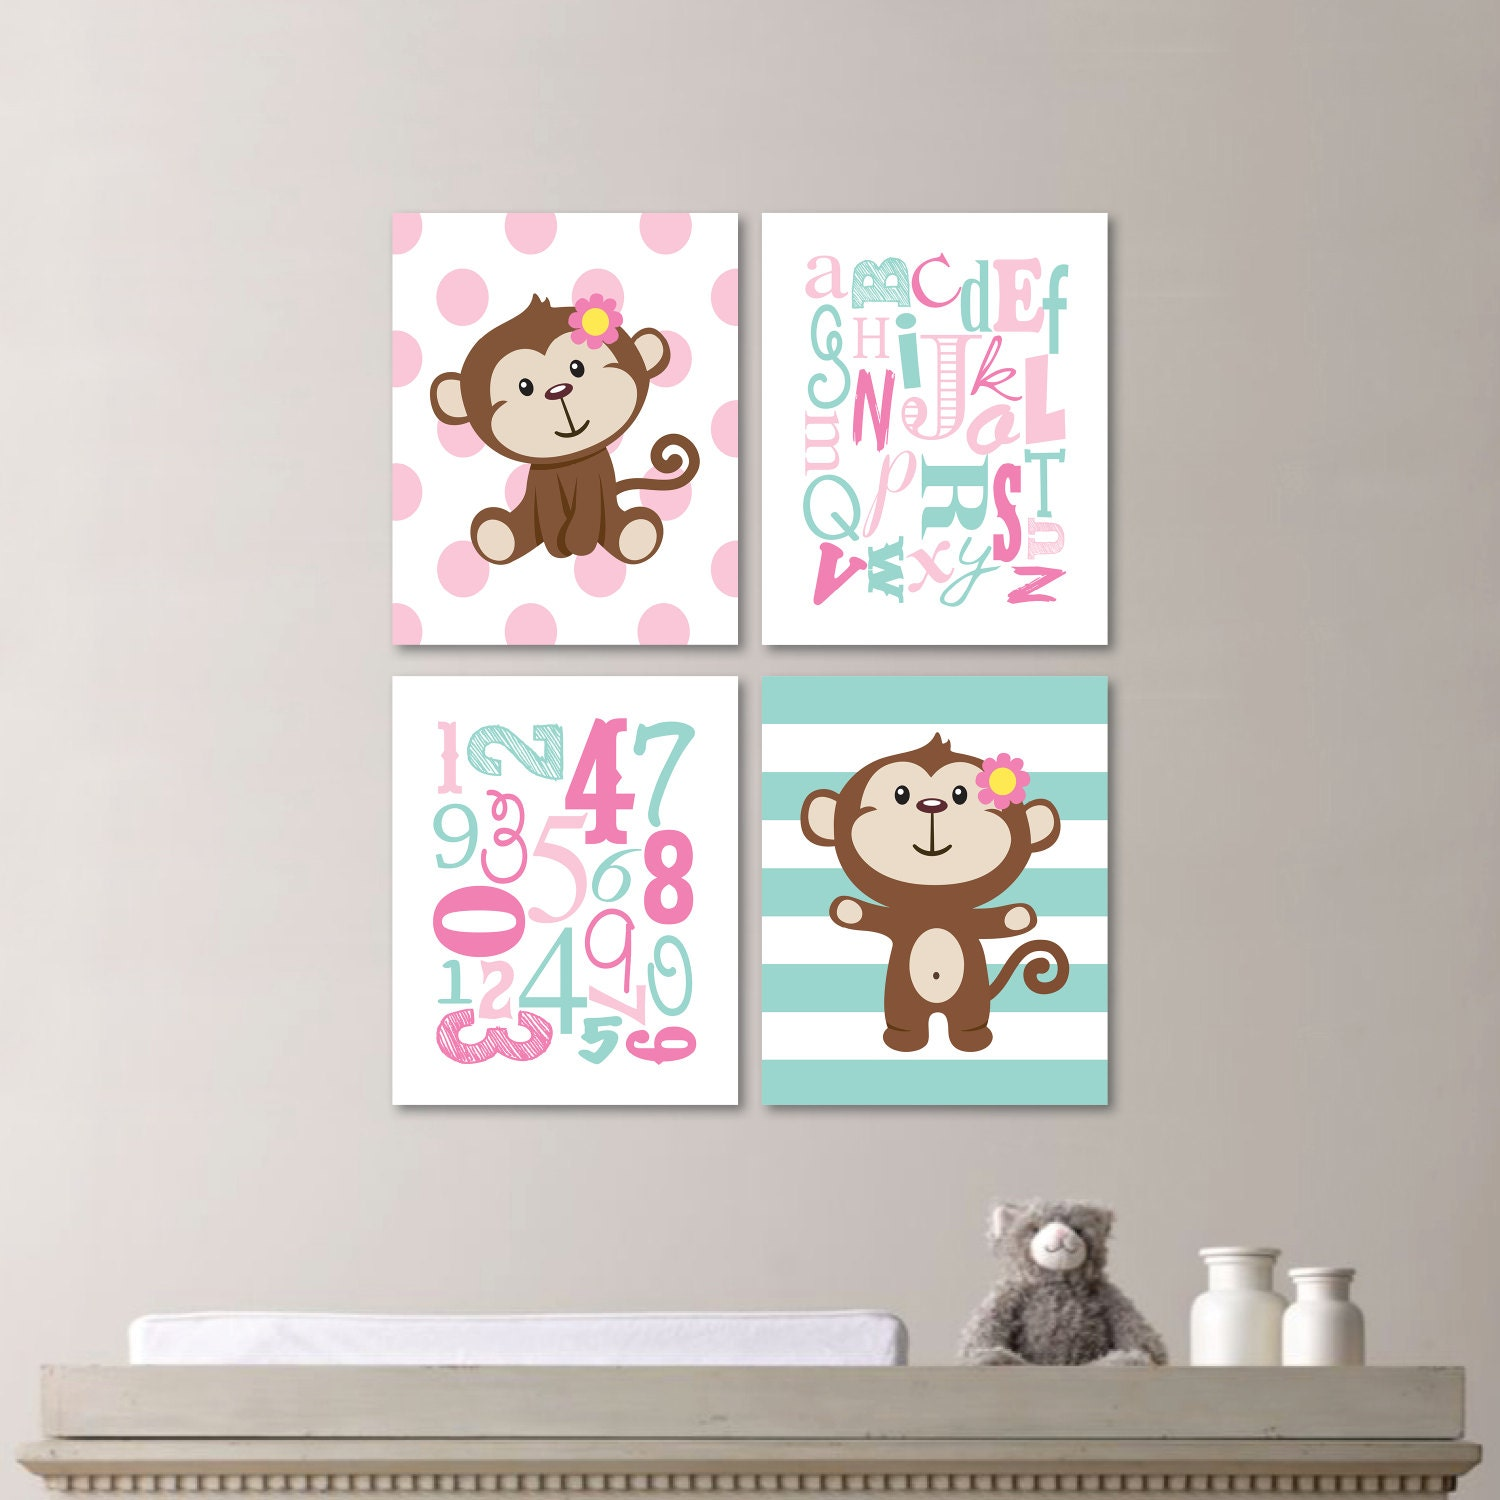 Monkey Bedroom Decorations Monkey Bedroom Etsy